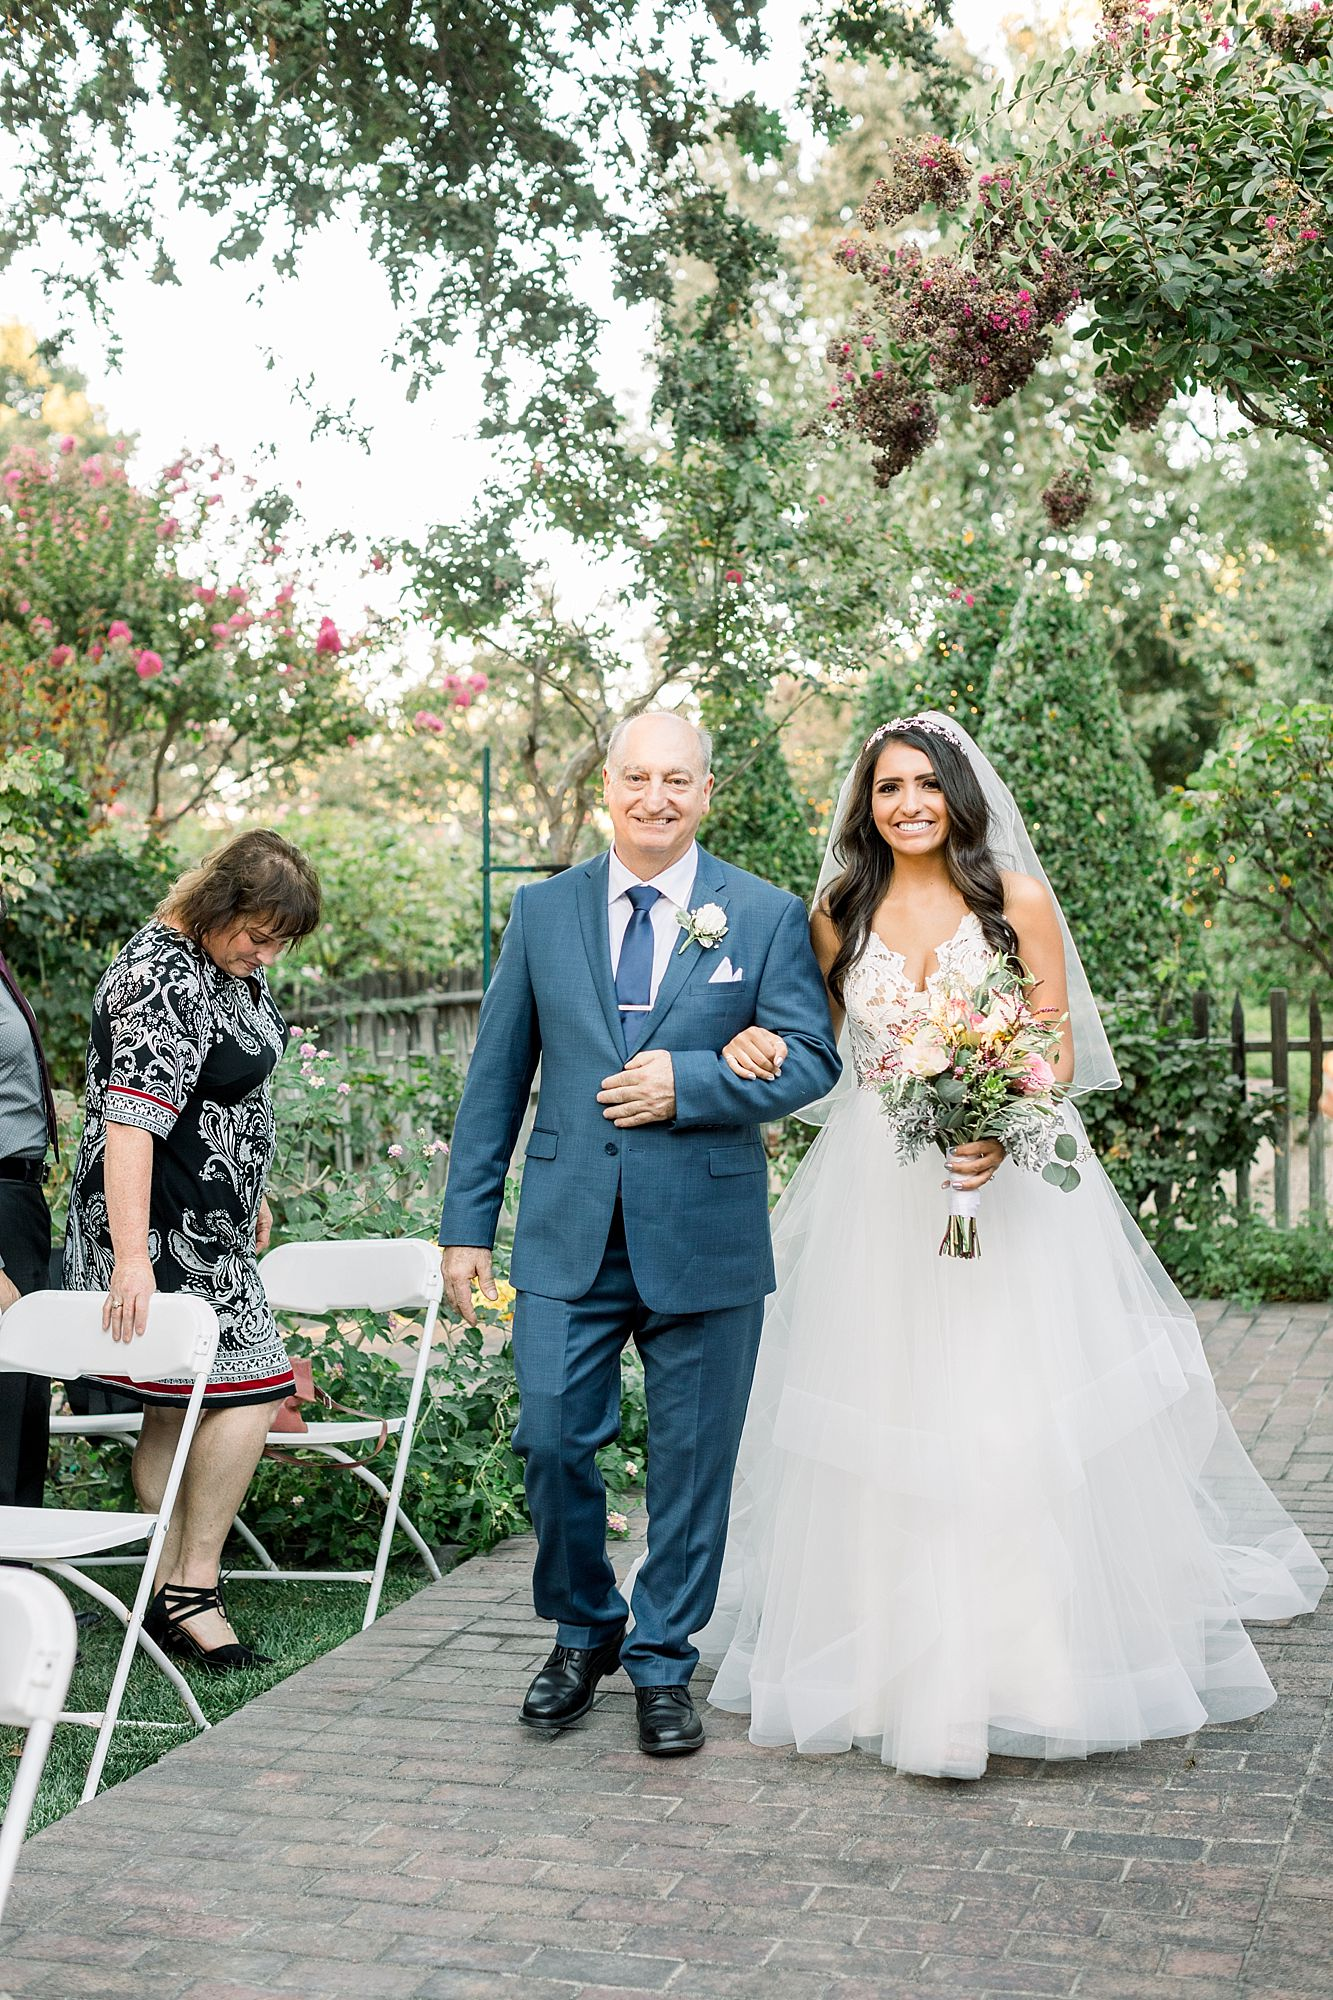 The River Mill Wedding Stockton - Ashley Baumgartner - Stockton Wedding Photographer - Sacramento Wedding Photography - Hybrid and Film Photographer - Sacramento Film Photographer_0043.jpg